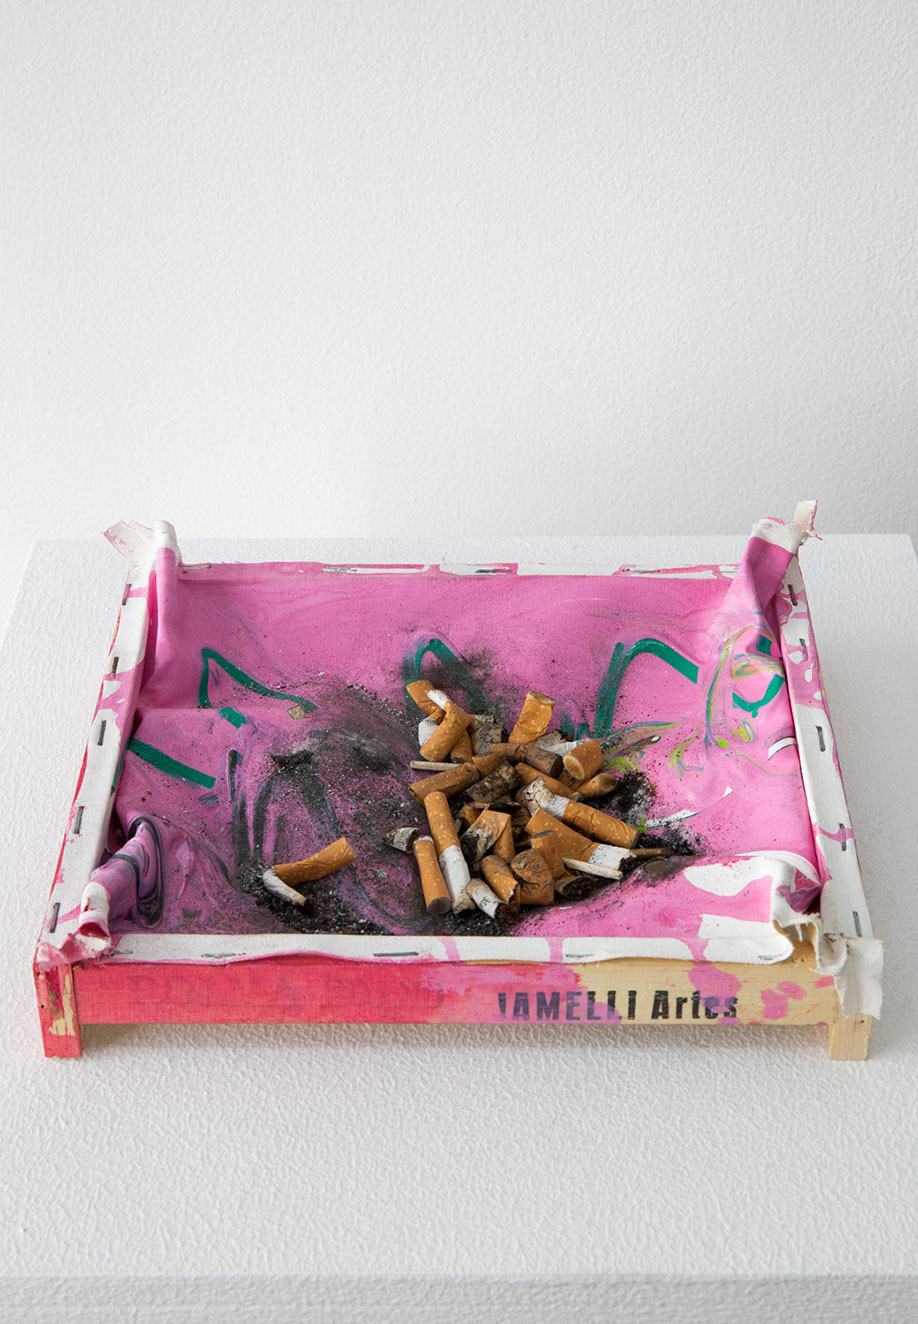 <b>Title: </b>Painting for a Smoker<br /><b>Year: </b>2013<br /><b>Medium: </b>Cigarettes, painting<br /><b>Size: </b>36 x 5 x 21 cm